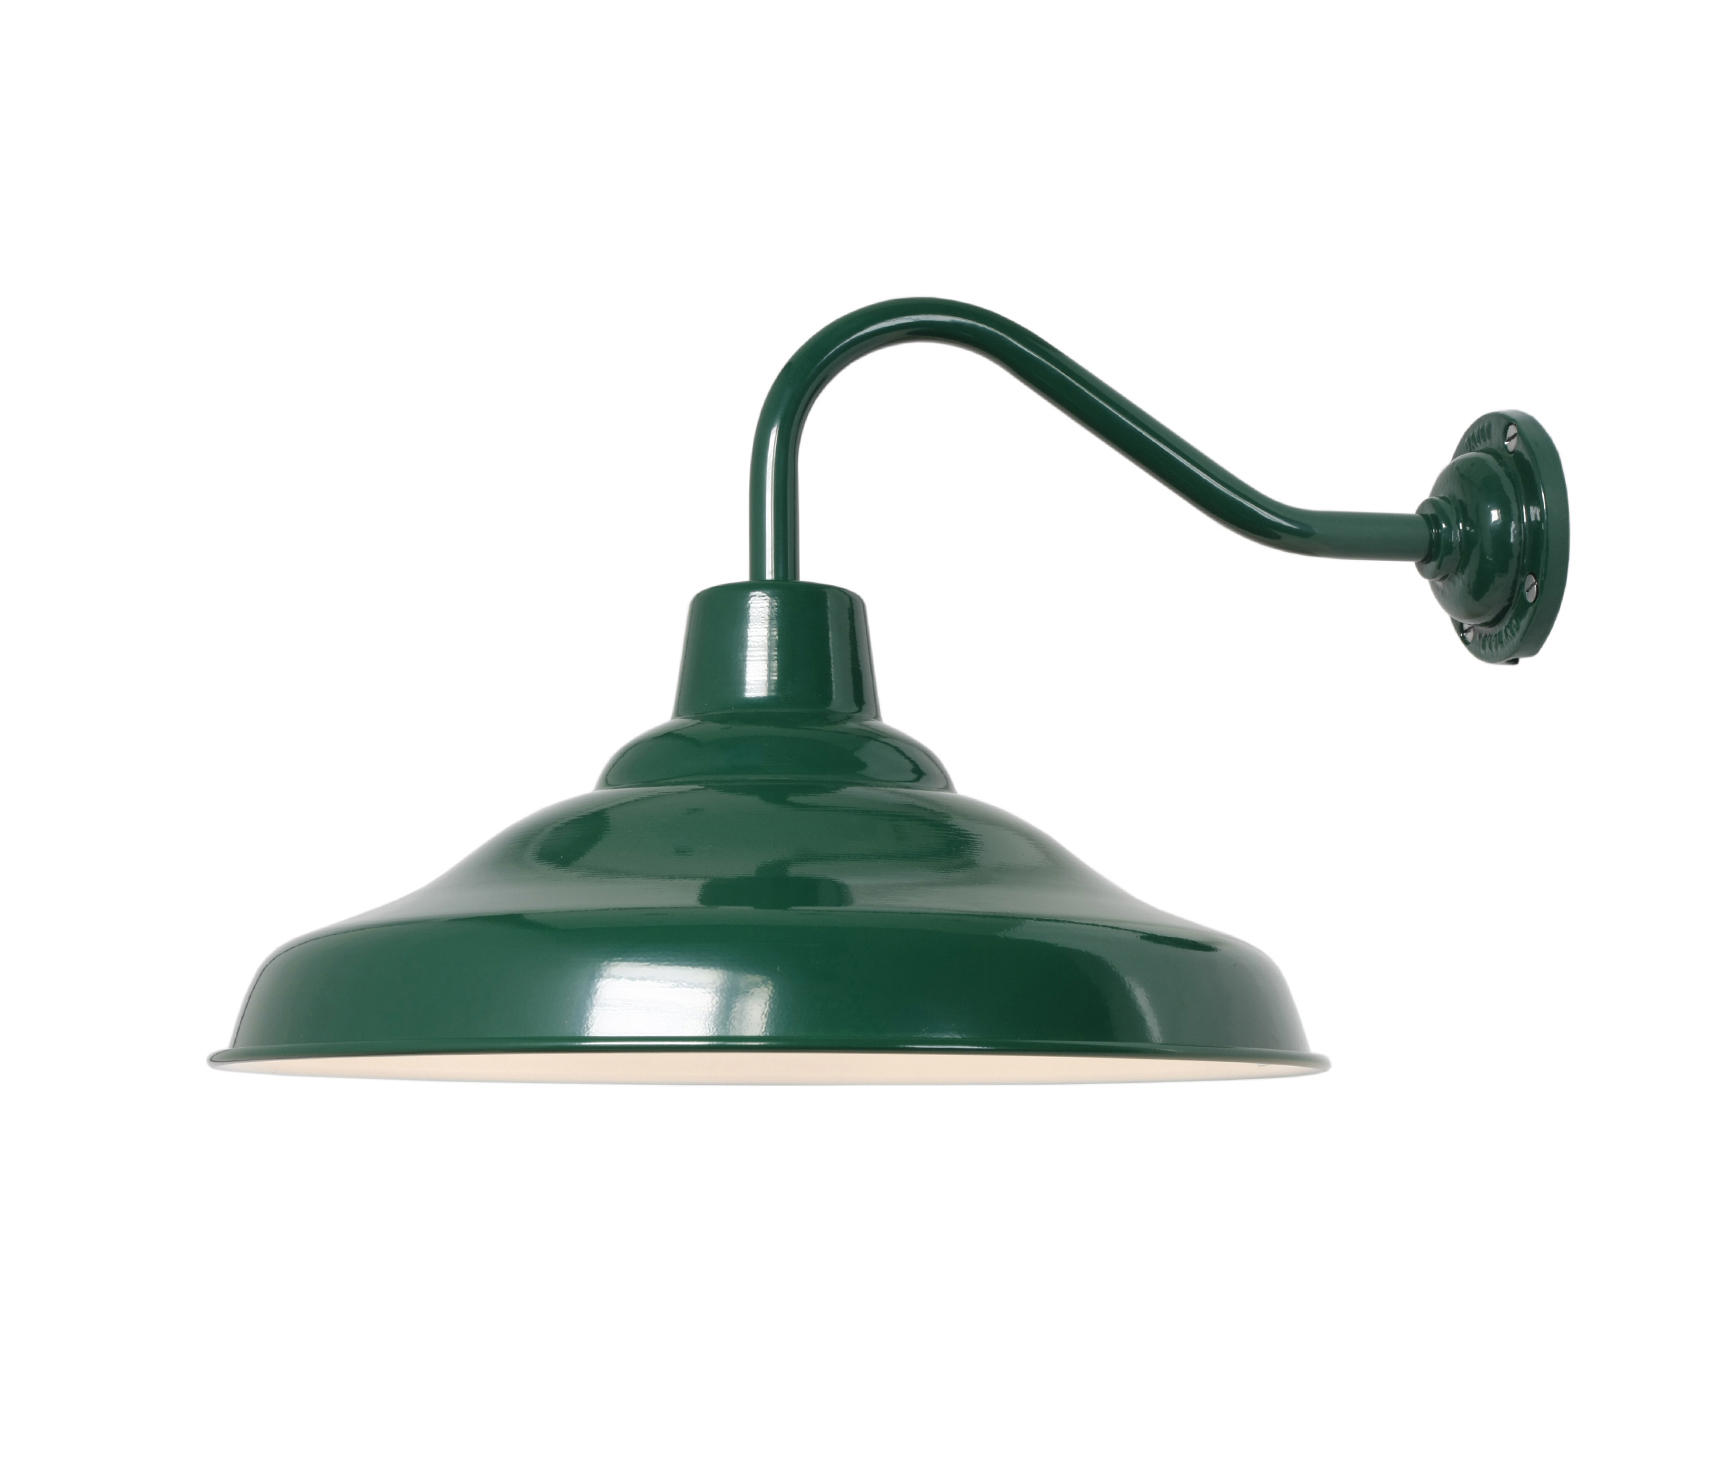 7200 SCHOOL WALL LIGHT, PAINTED GREEN, WHITE INTERIOR - General lighting from Davey Lighting..